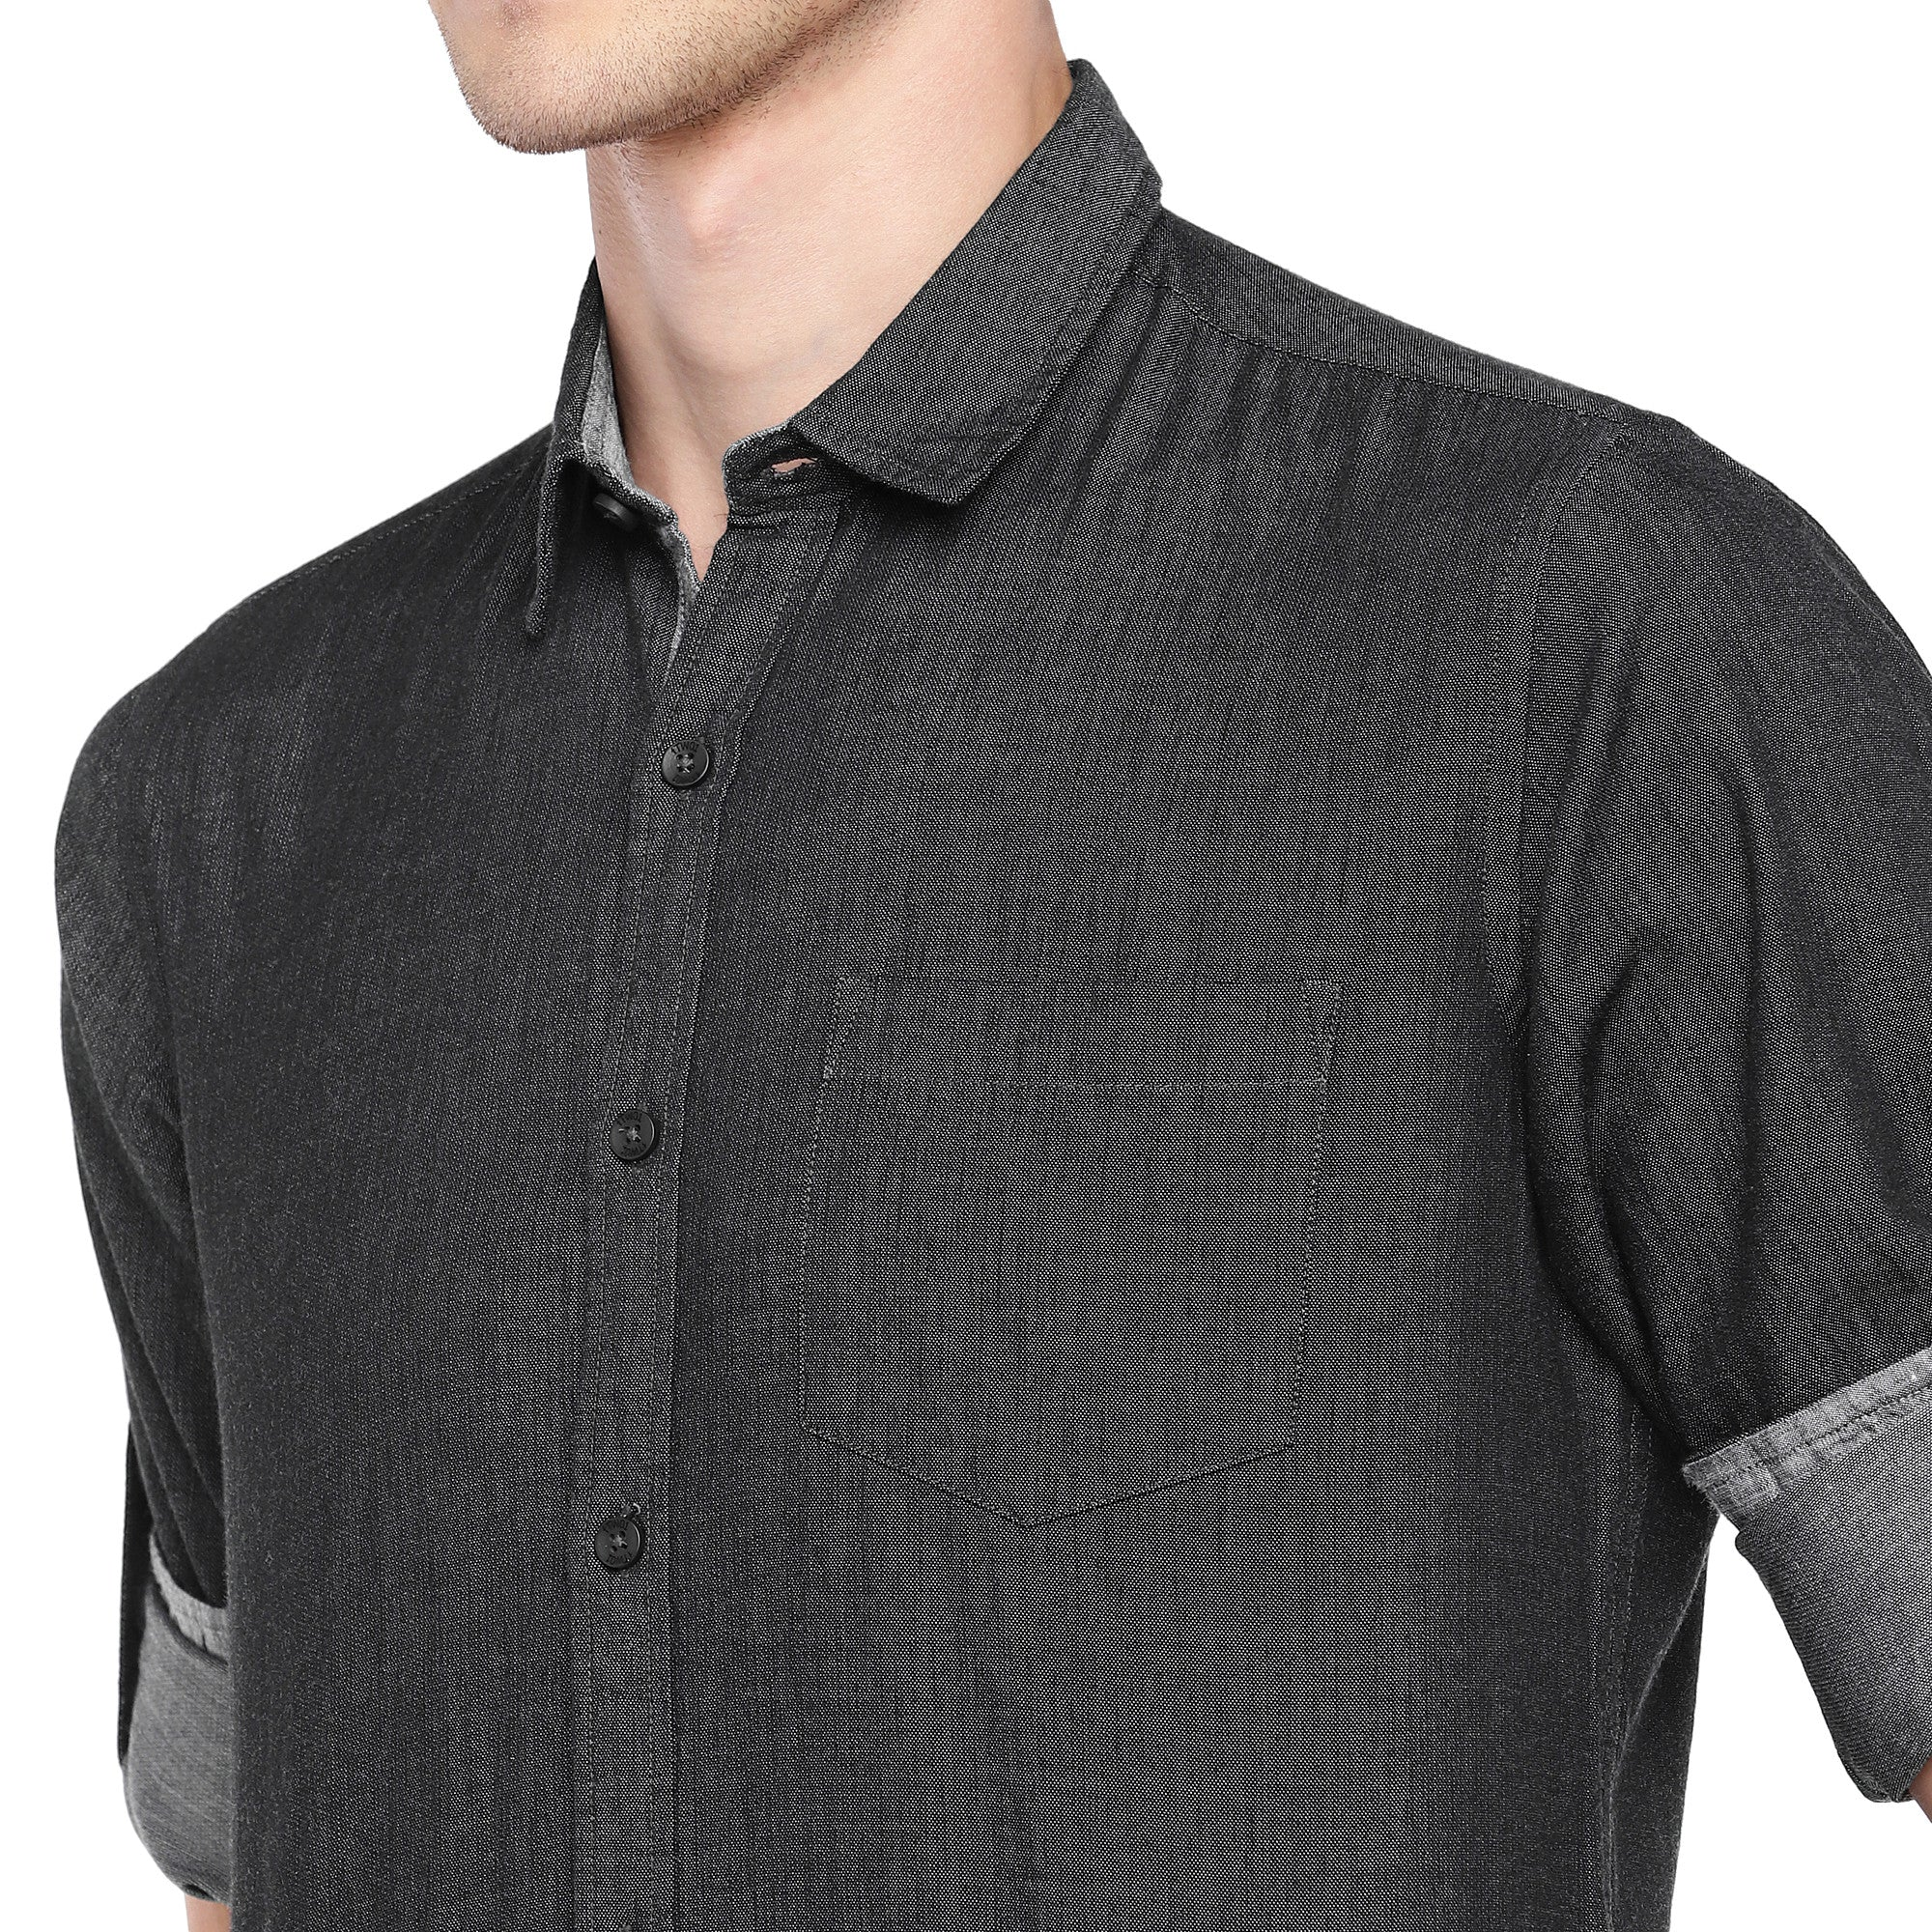 Charcoal Grey Regular Fit Solid Casual Shirt-5